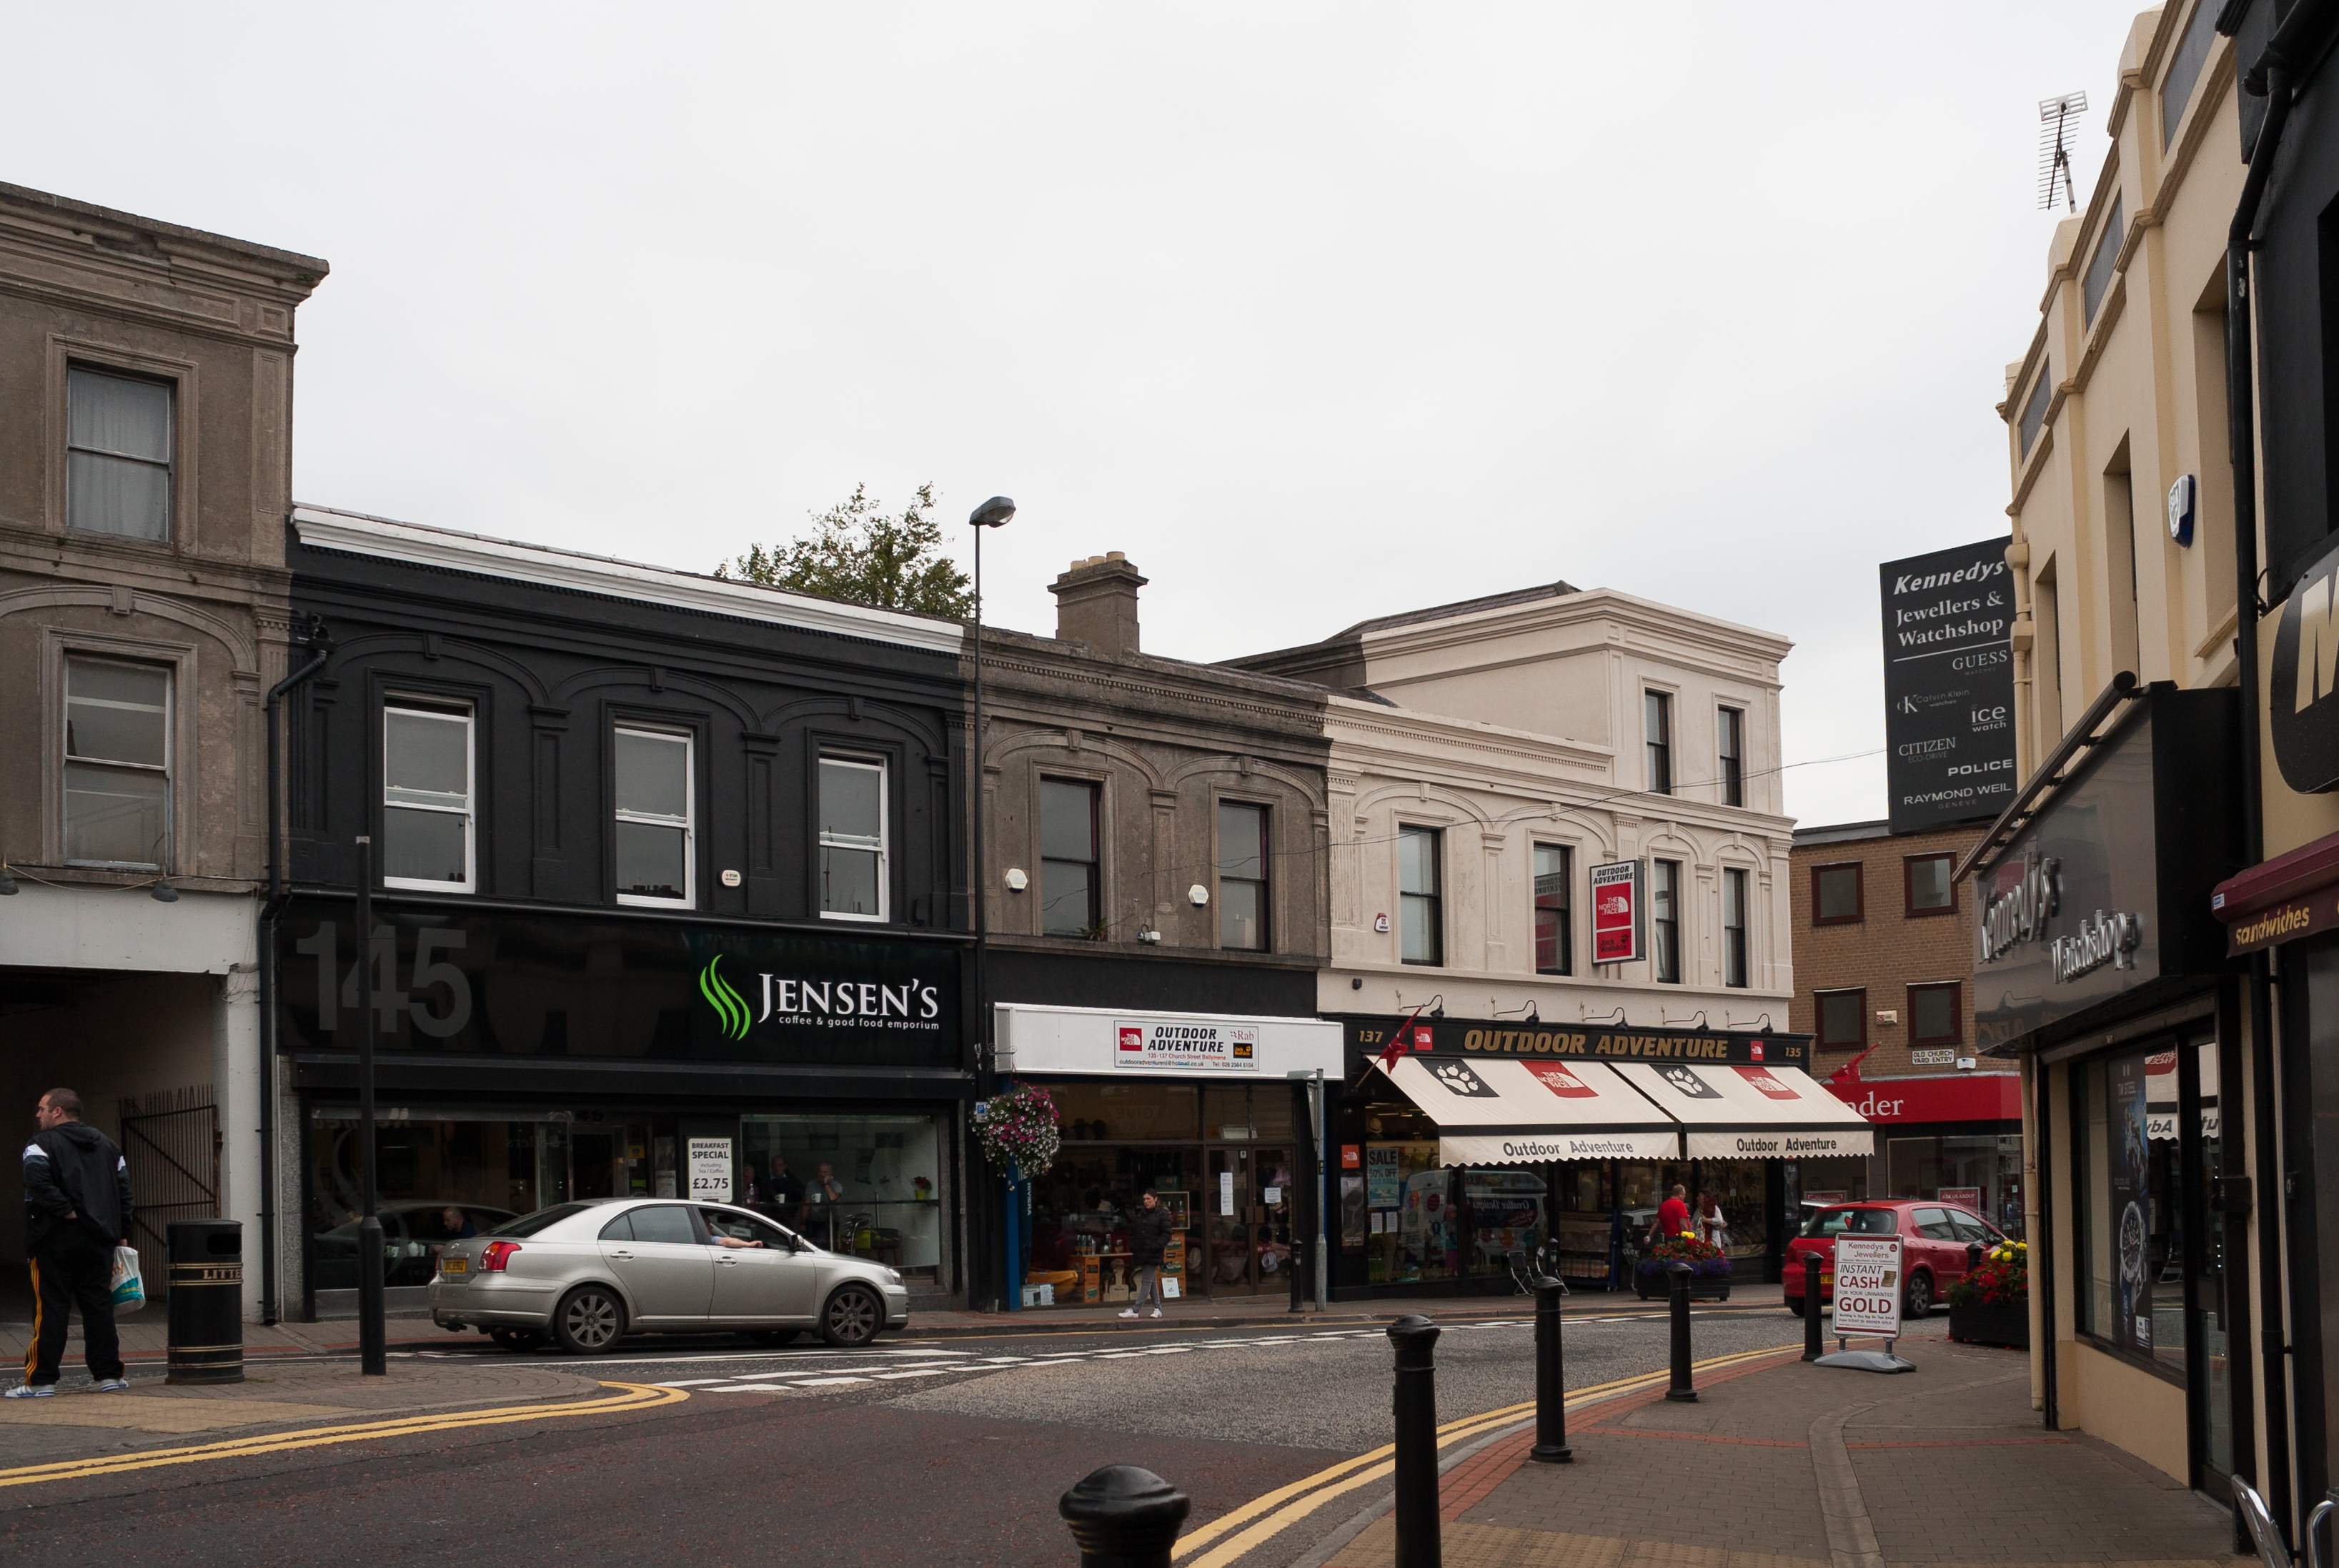 Ballymena United Kingdom  City pictures : ballymena, Ballymena, United Kingdom What happens in ballymena right ...